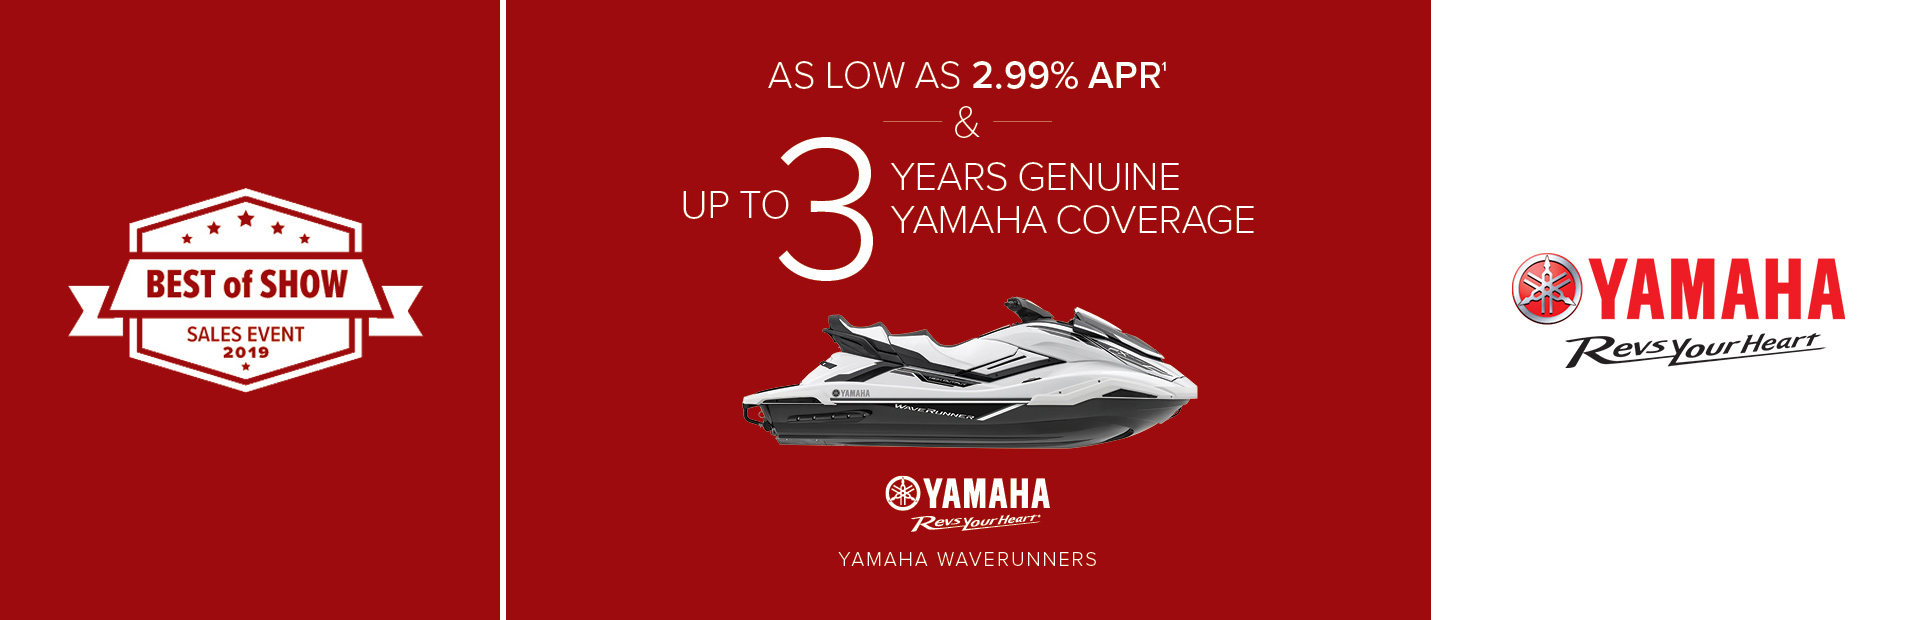 Yamaha: Best of Show - As Low As 2.99% APR